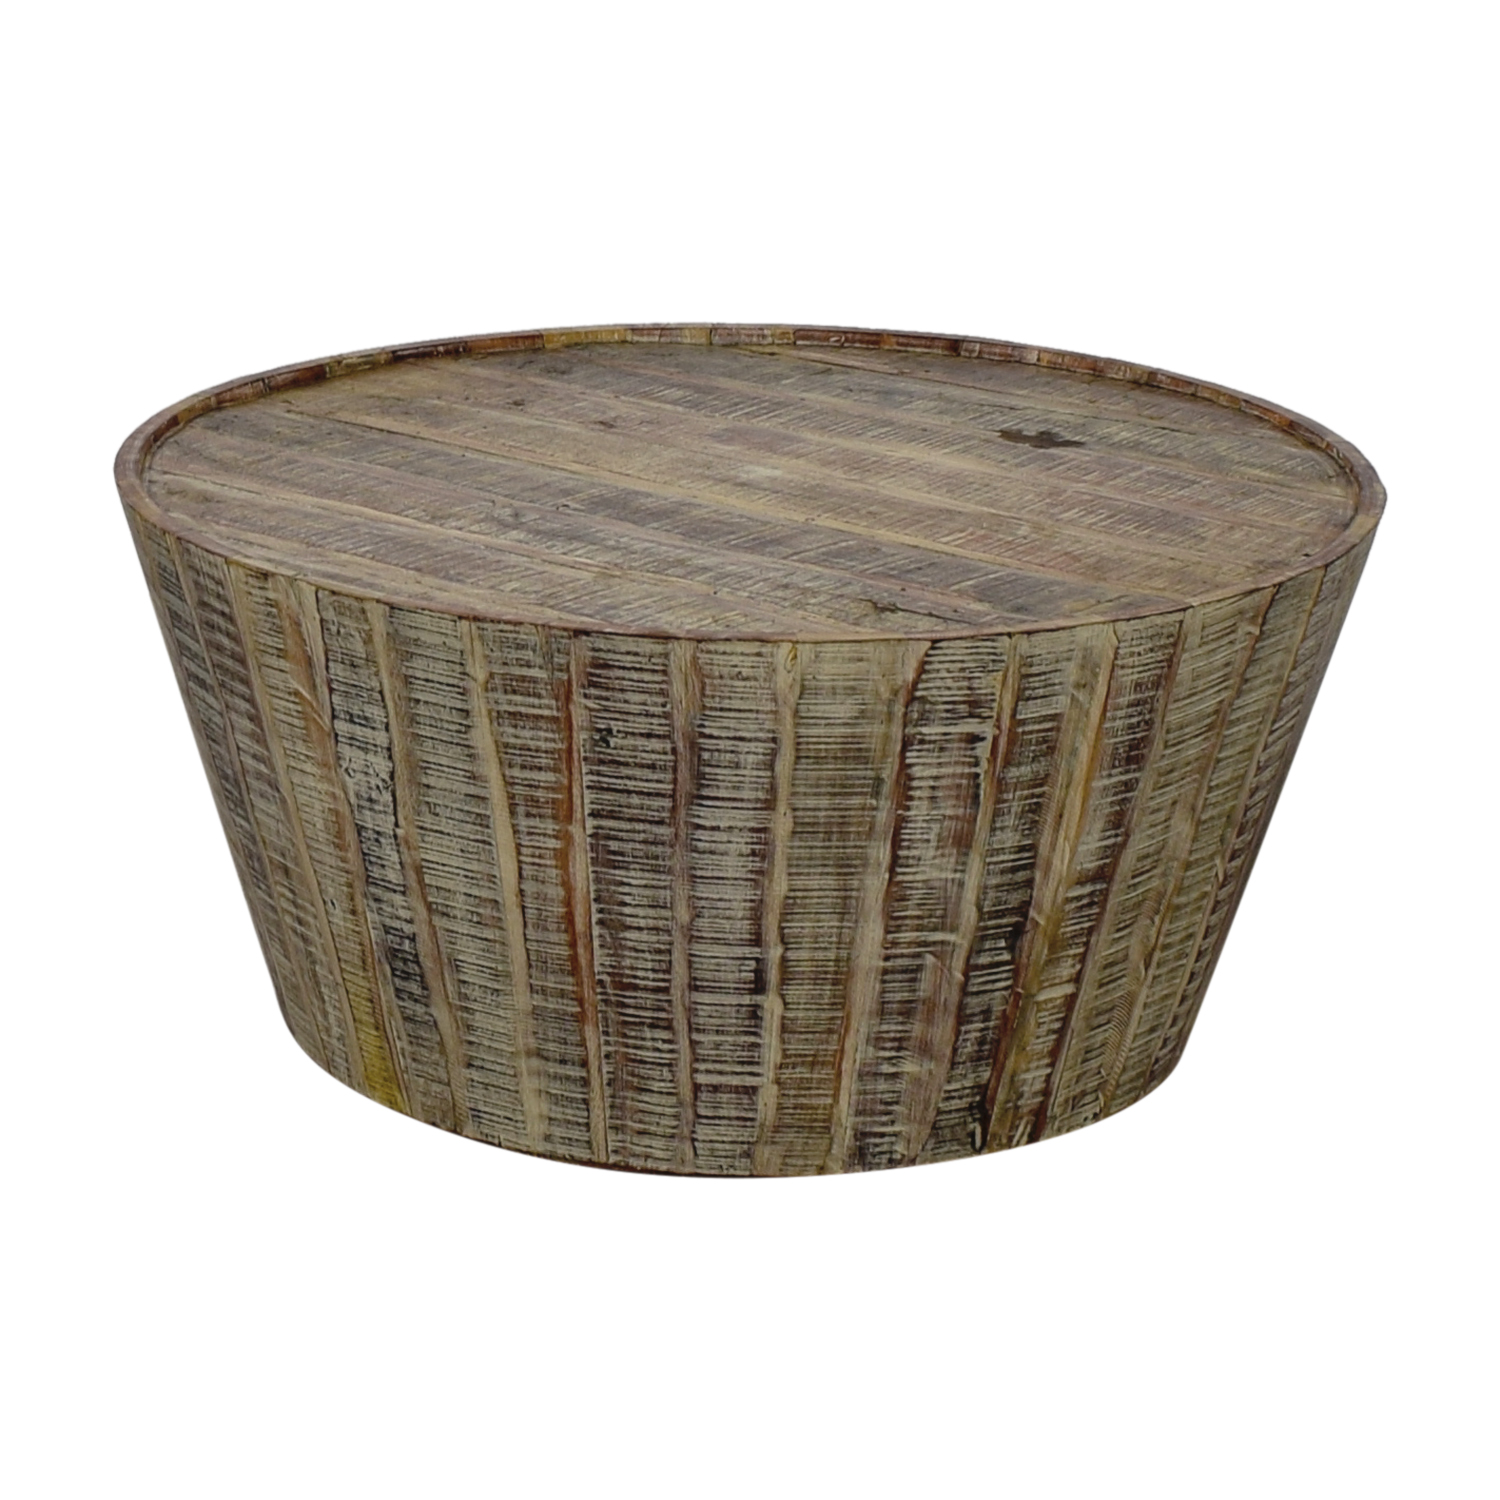 Rustic Round Wooden Coffee Table: West Elm West Elm Rustic Beech Wood Round Coffee